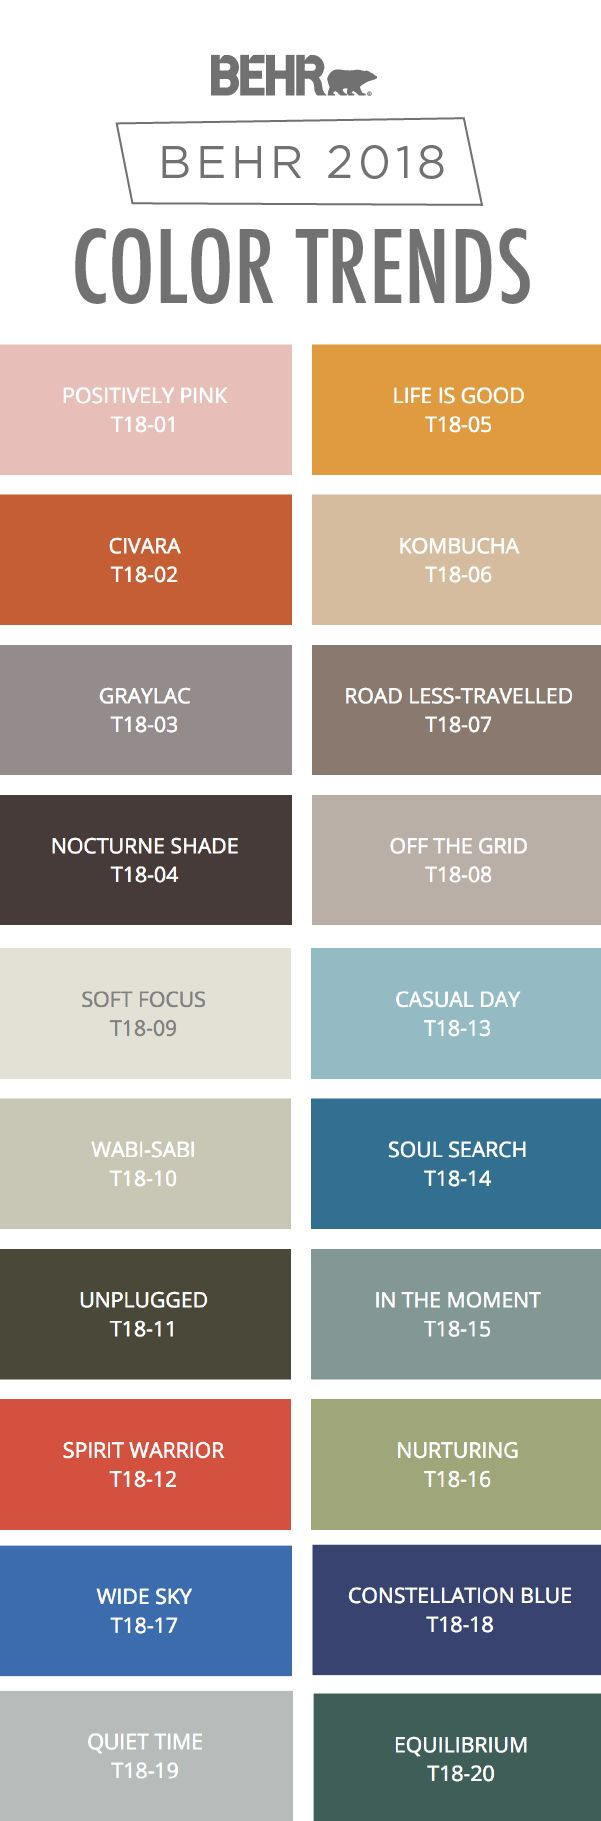 Searching for the paint colors that will define the year ahead? Check out these BEHR 2018 Color Trends. A mixture of light neutrals and bold pops of color come together to create a collection of stylish paint hues that you can't help but love. Click here to explore the full range of modern shades.